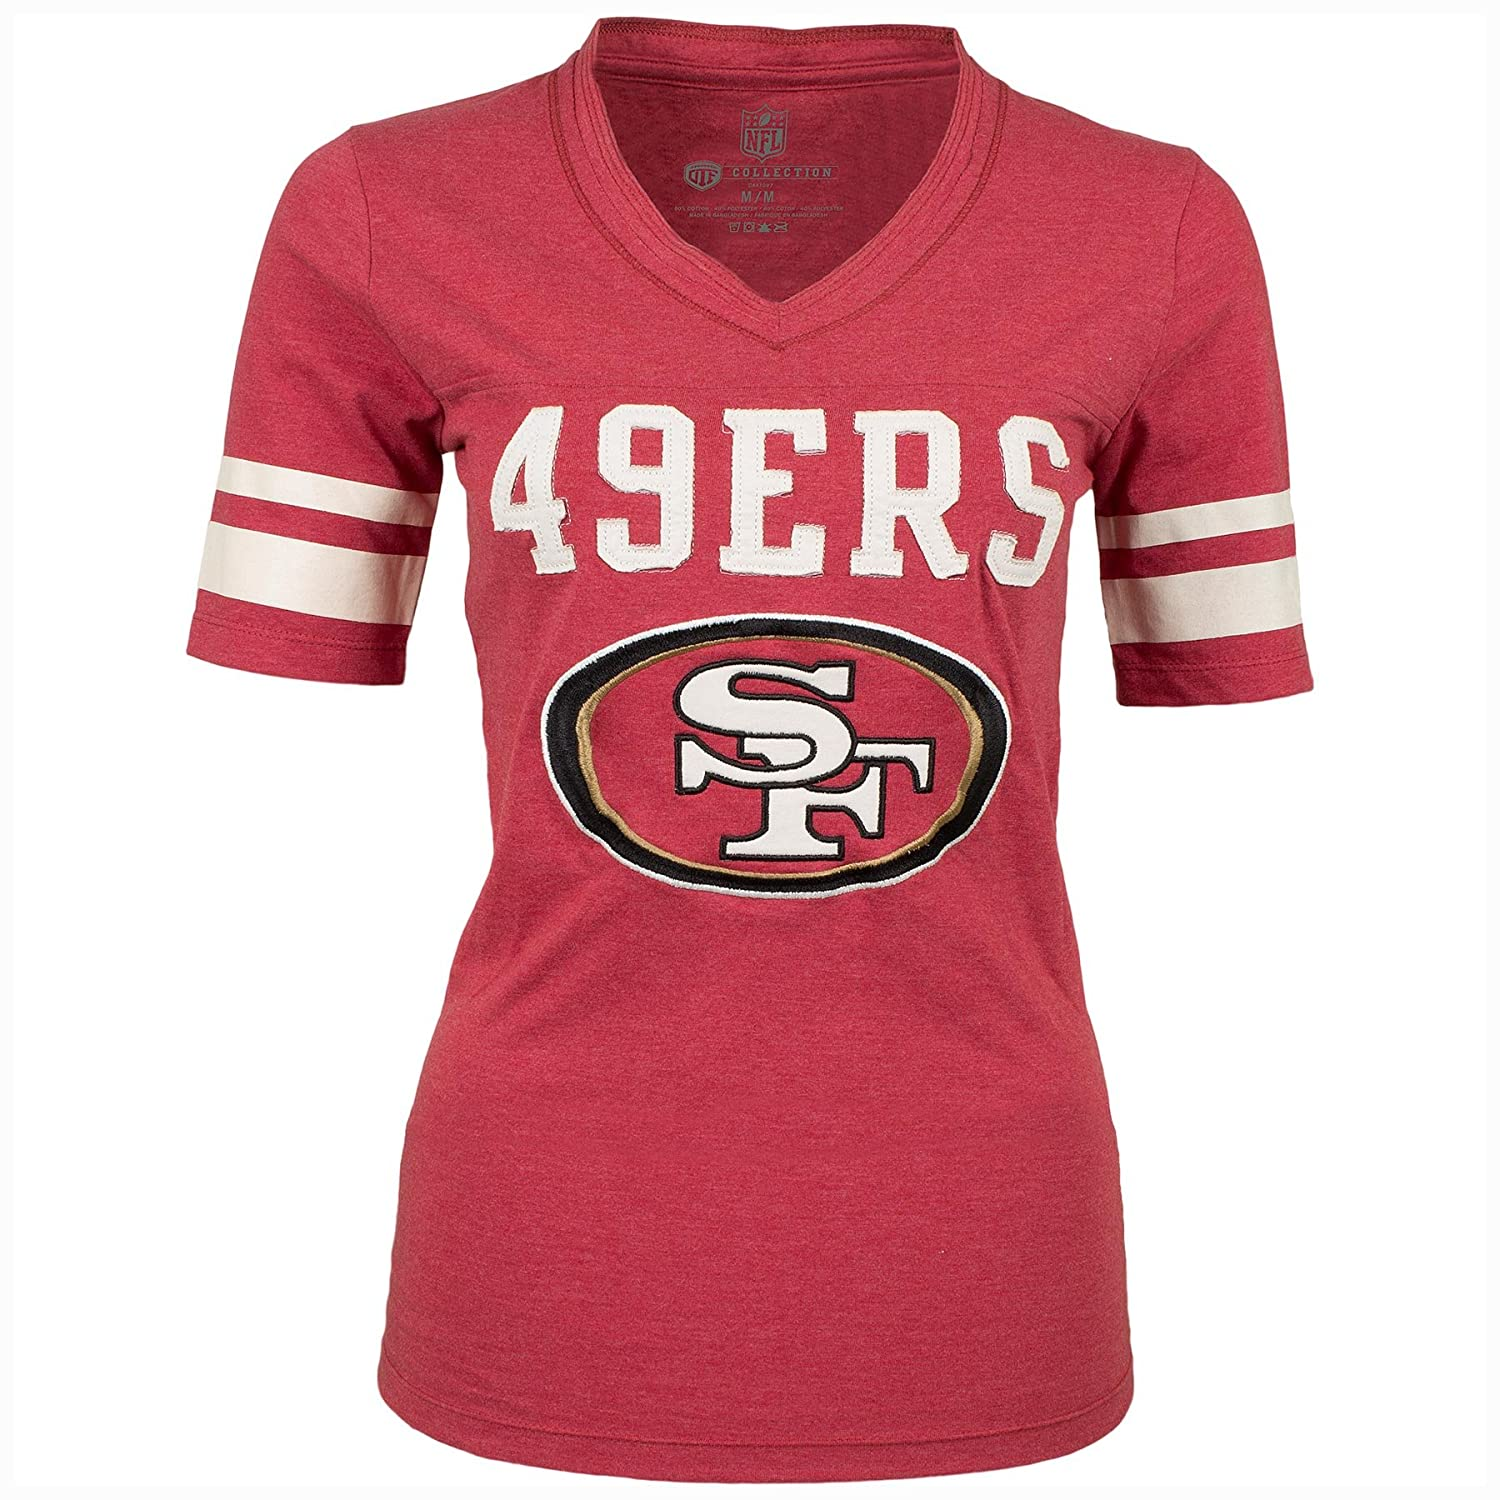 San Francisco 49ers Women's Cheer T-Shirt - Size Large Old Time Football